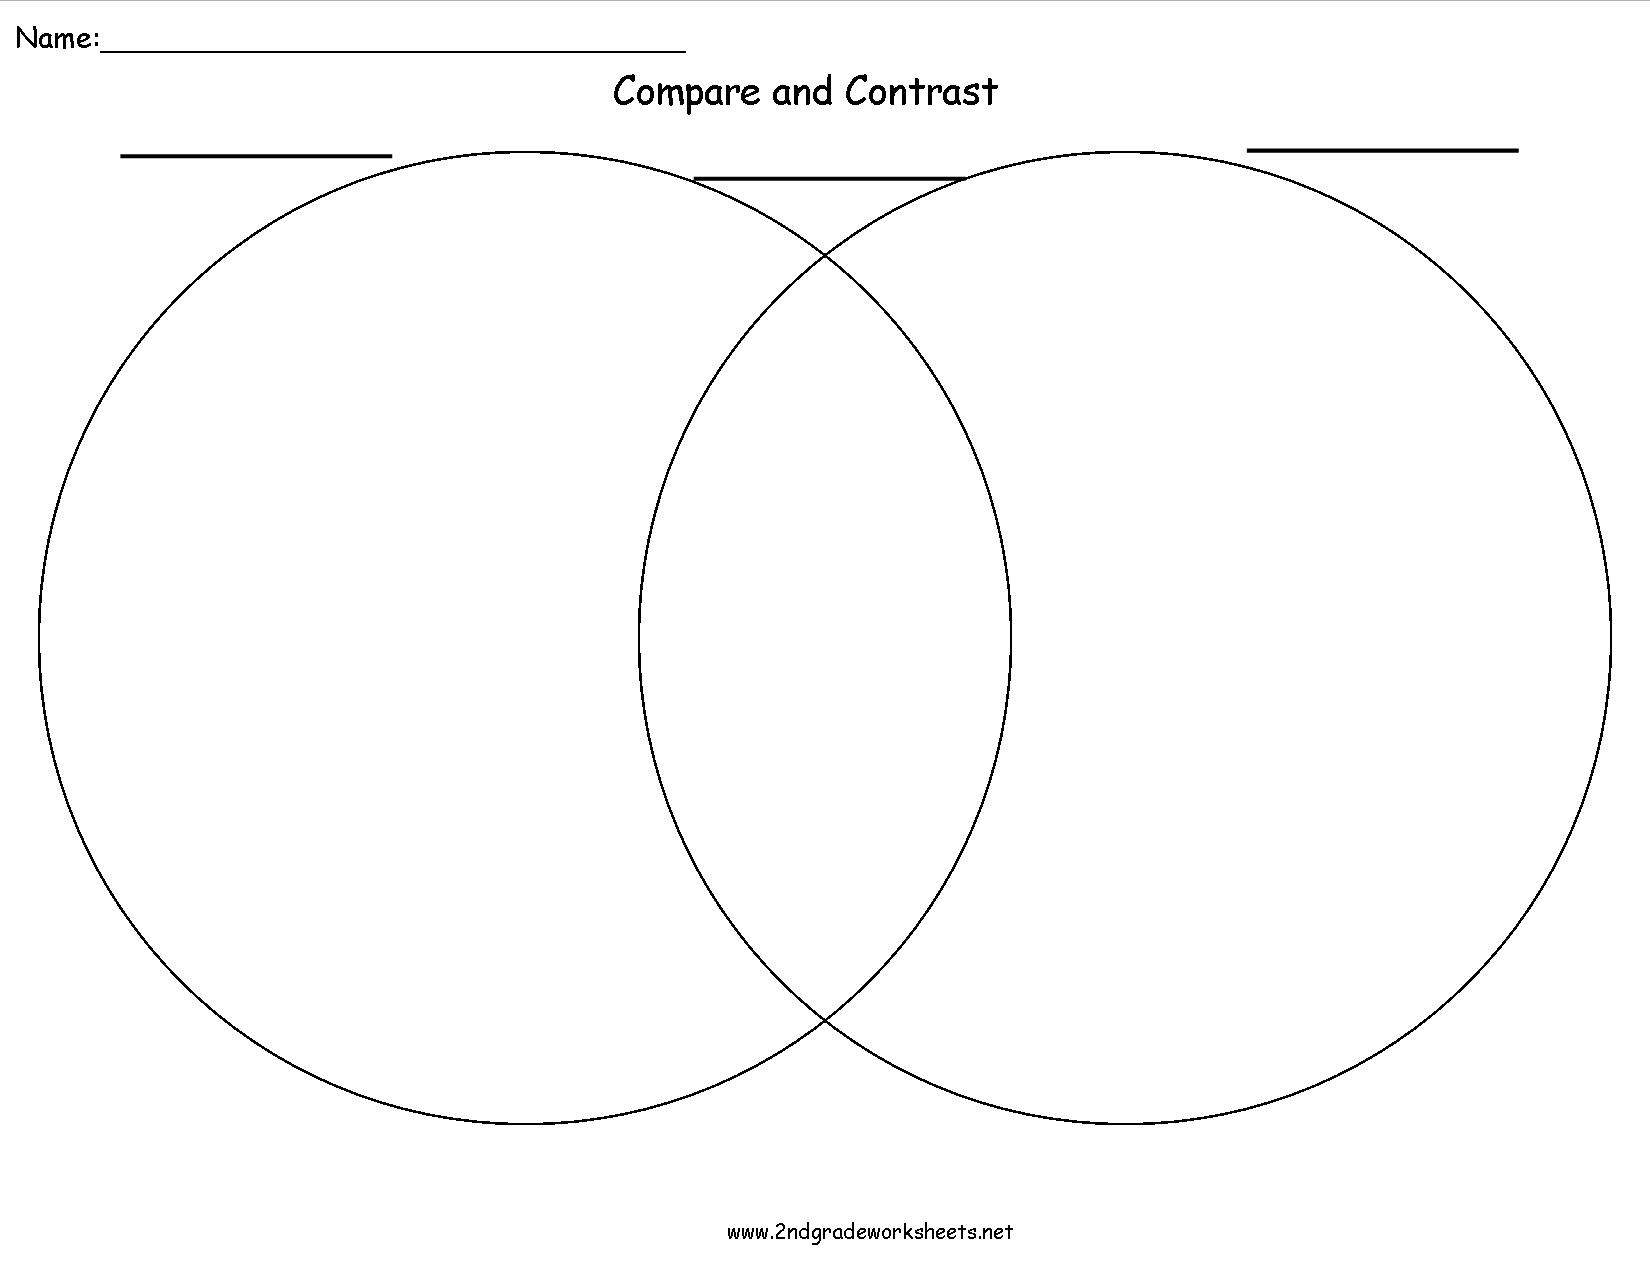 Writing Organizers Worksheets | Printable Compare And Contrast Worksheets